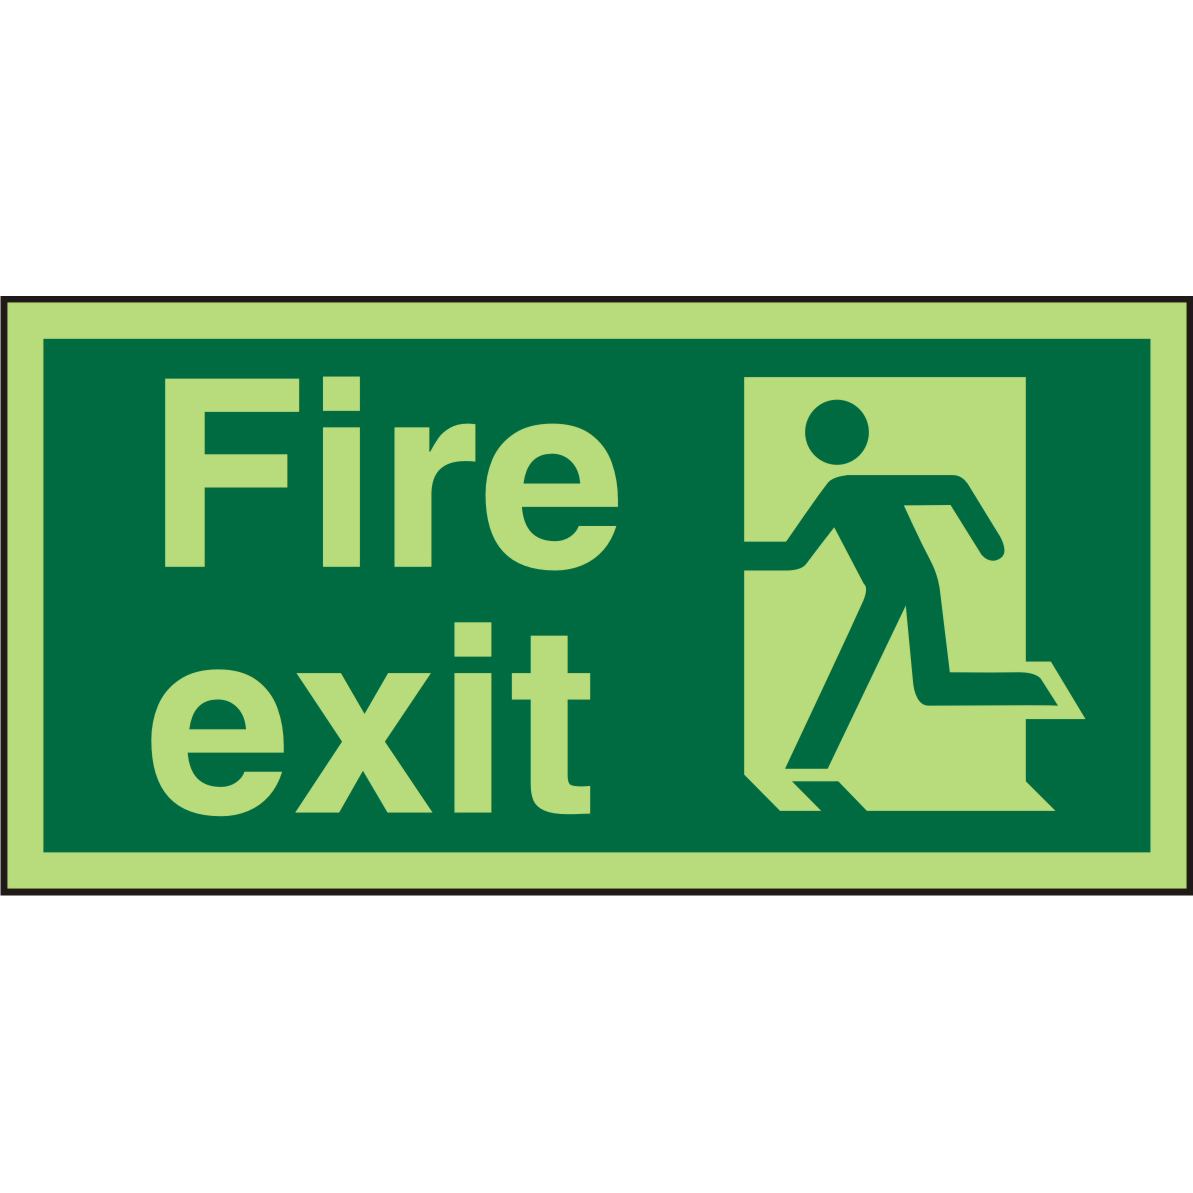 Photolu Sign 300x150 1mm Plastic Fire Exit Man Running Left Ref PSP319SRP300x150 Up to 10 Day Leadtime